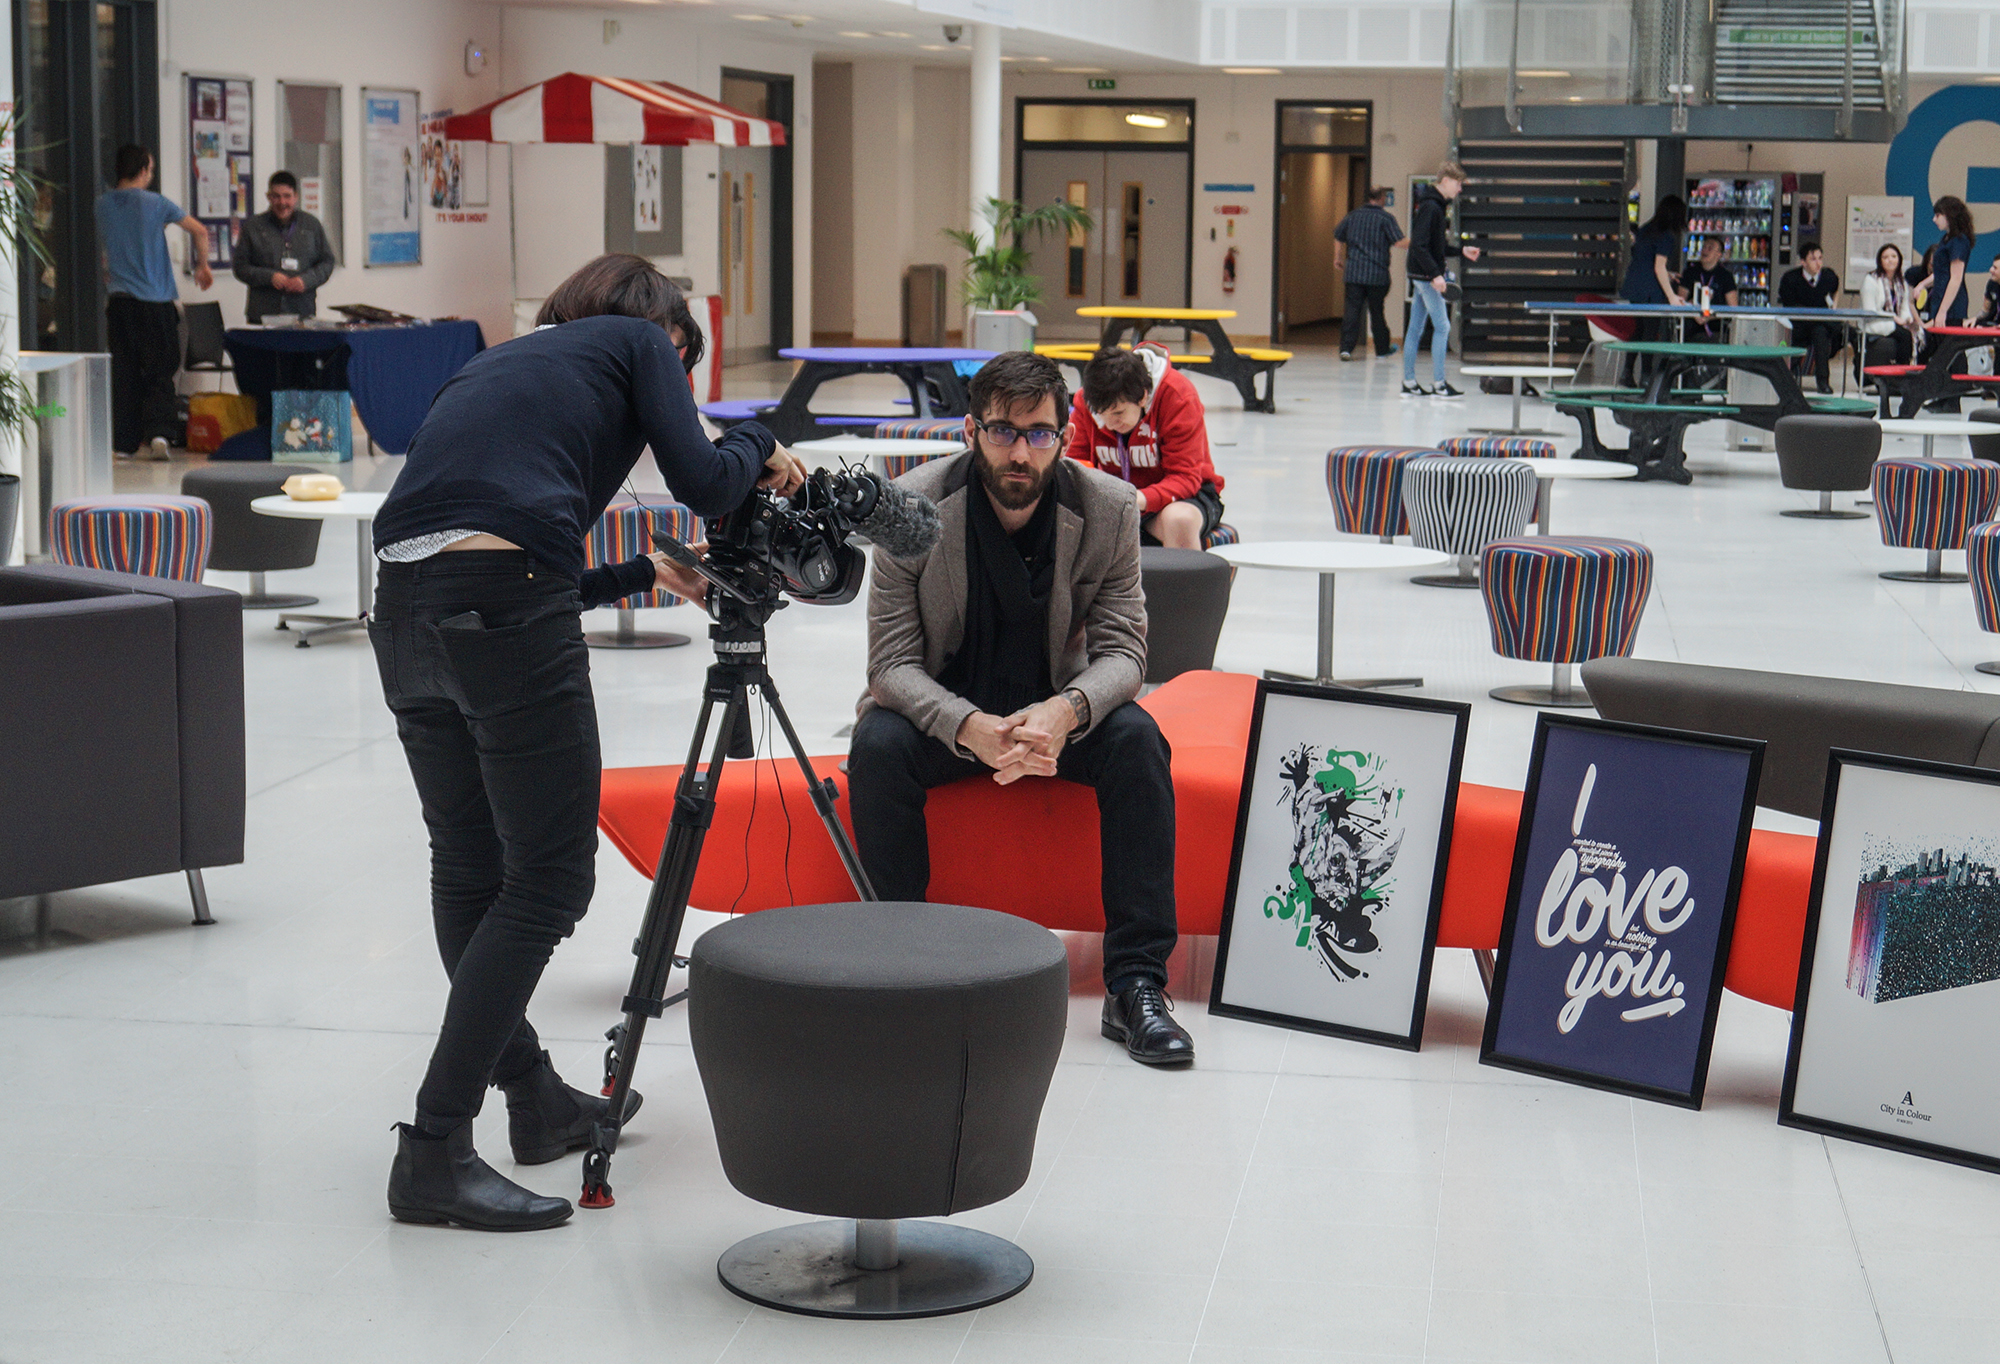 Ash Allwood telling BBC South East Today reporter, Bryony MacKenzie about his time living on the streets and how studying at degree at the college helped to get his life back on track.